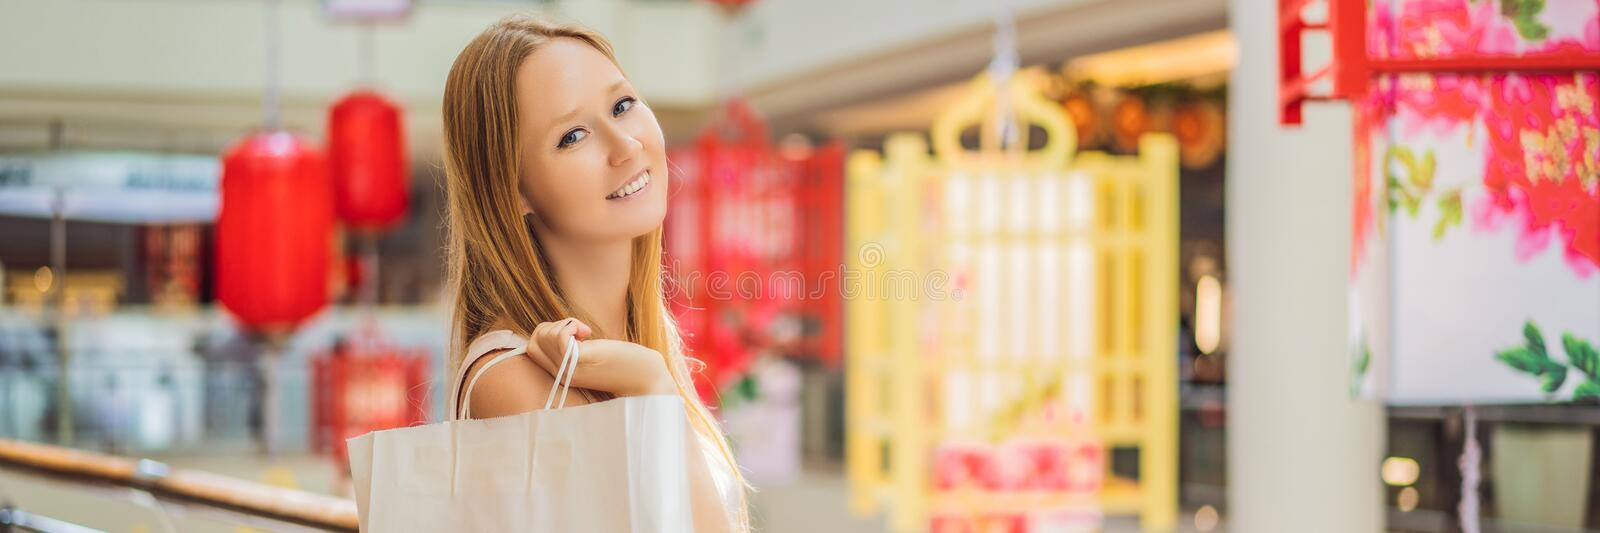 BANNER, LONG FORMAT Woman hold shopping bag against the background of Chinese red lanterns for the Chinese New Year. Big royalty free stock photos